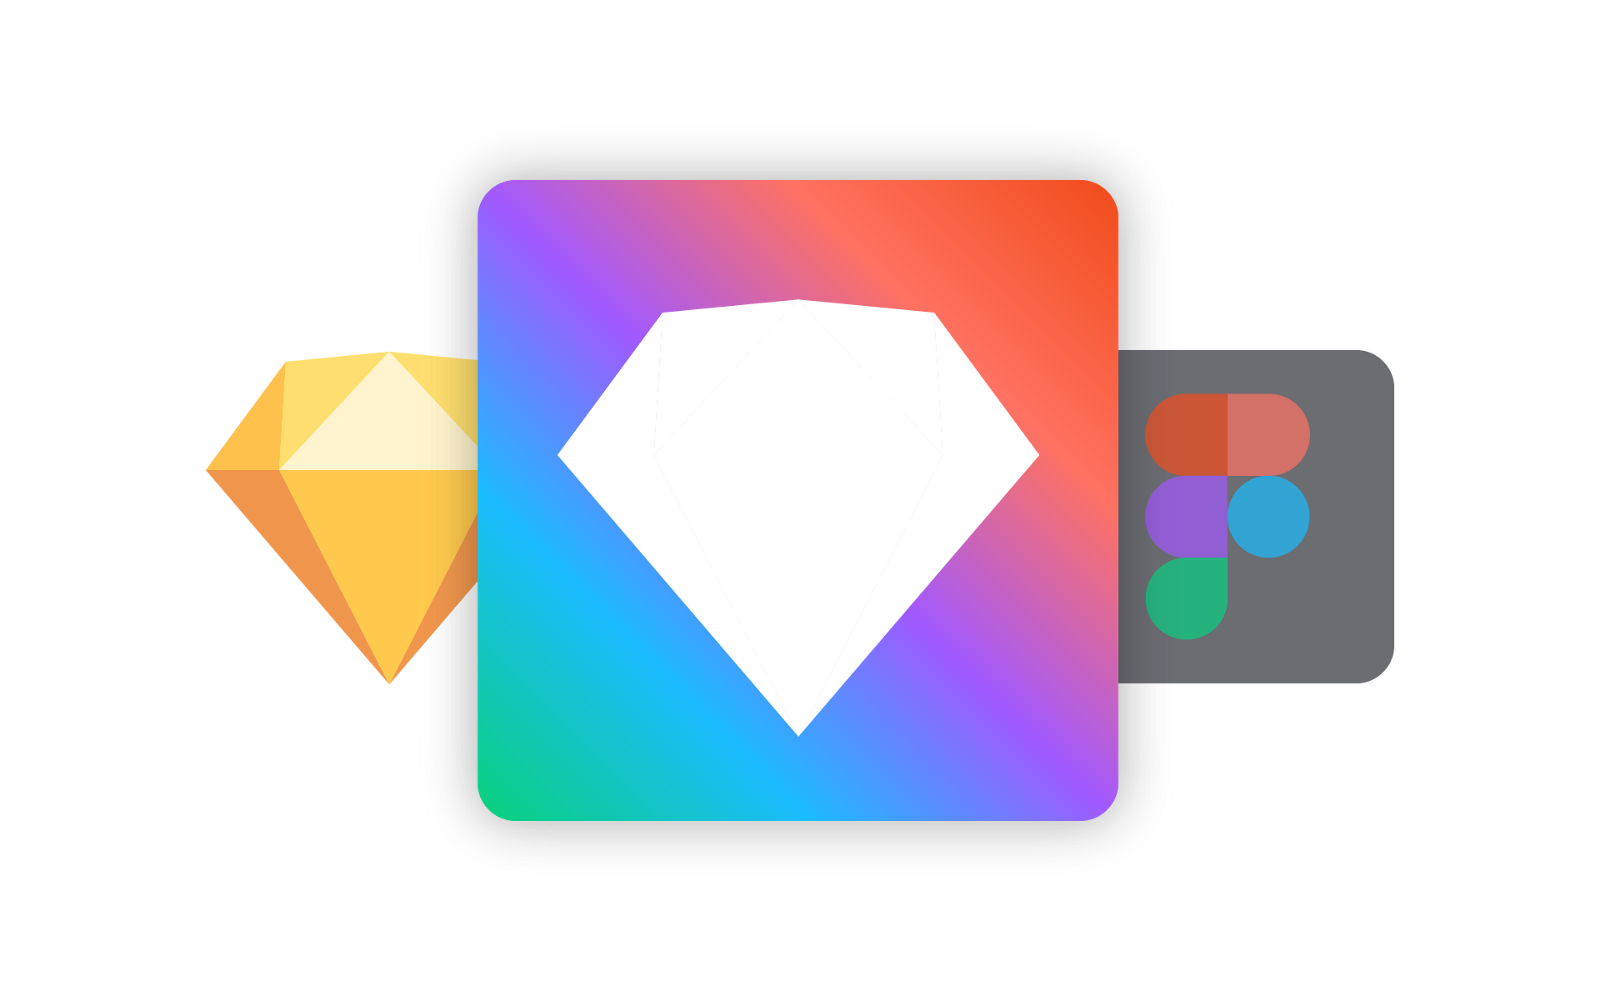 Why Sketch will buy Figma – Prototypr